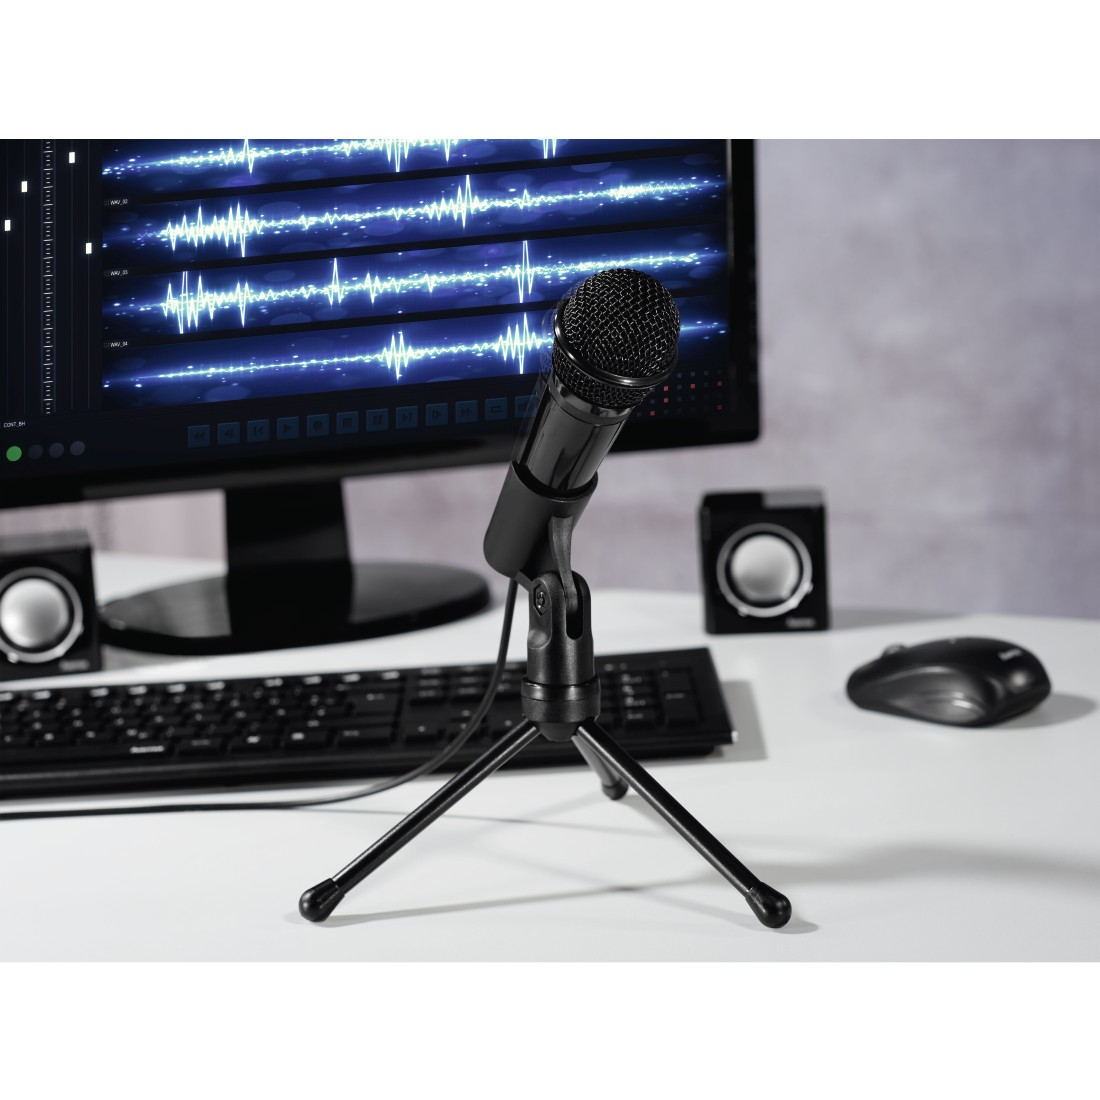 "awx High-Res Appliance - Hama, ""MIC-P35 Allround"" Microphone for PC and Notebook, 3.5 mm Jack Plug"